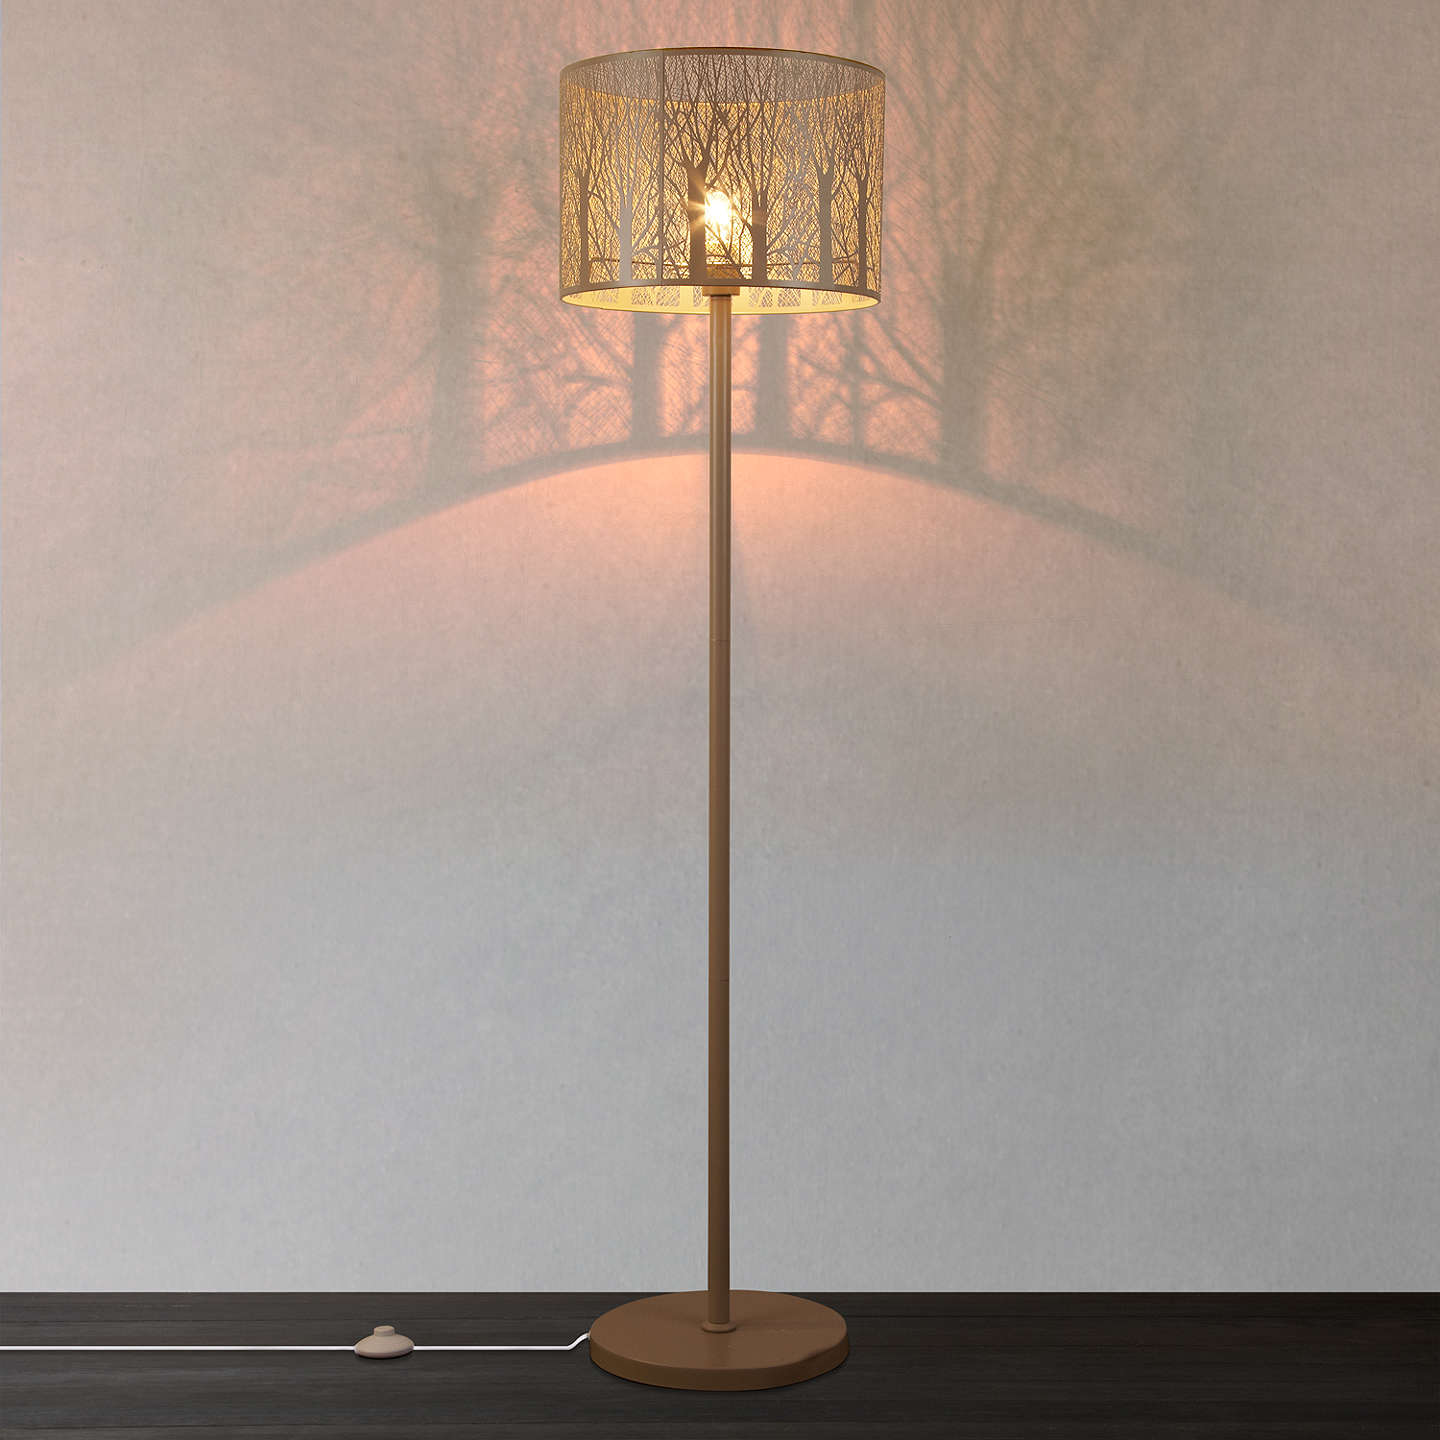 John lewis devon large floor lamp taupe at john lewis buyjohn lewis devon large floor lamp taupe online at johnlewis mozeypictures